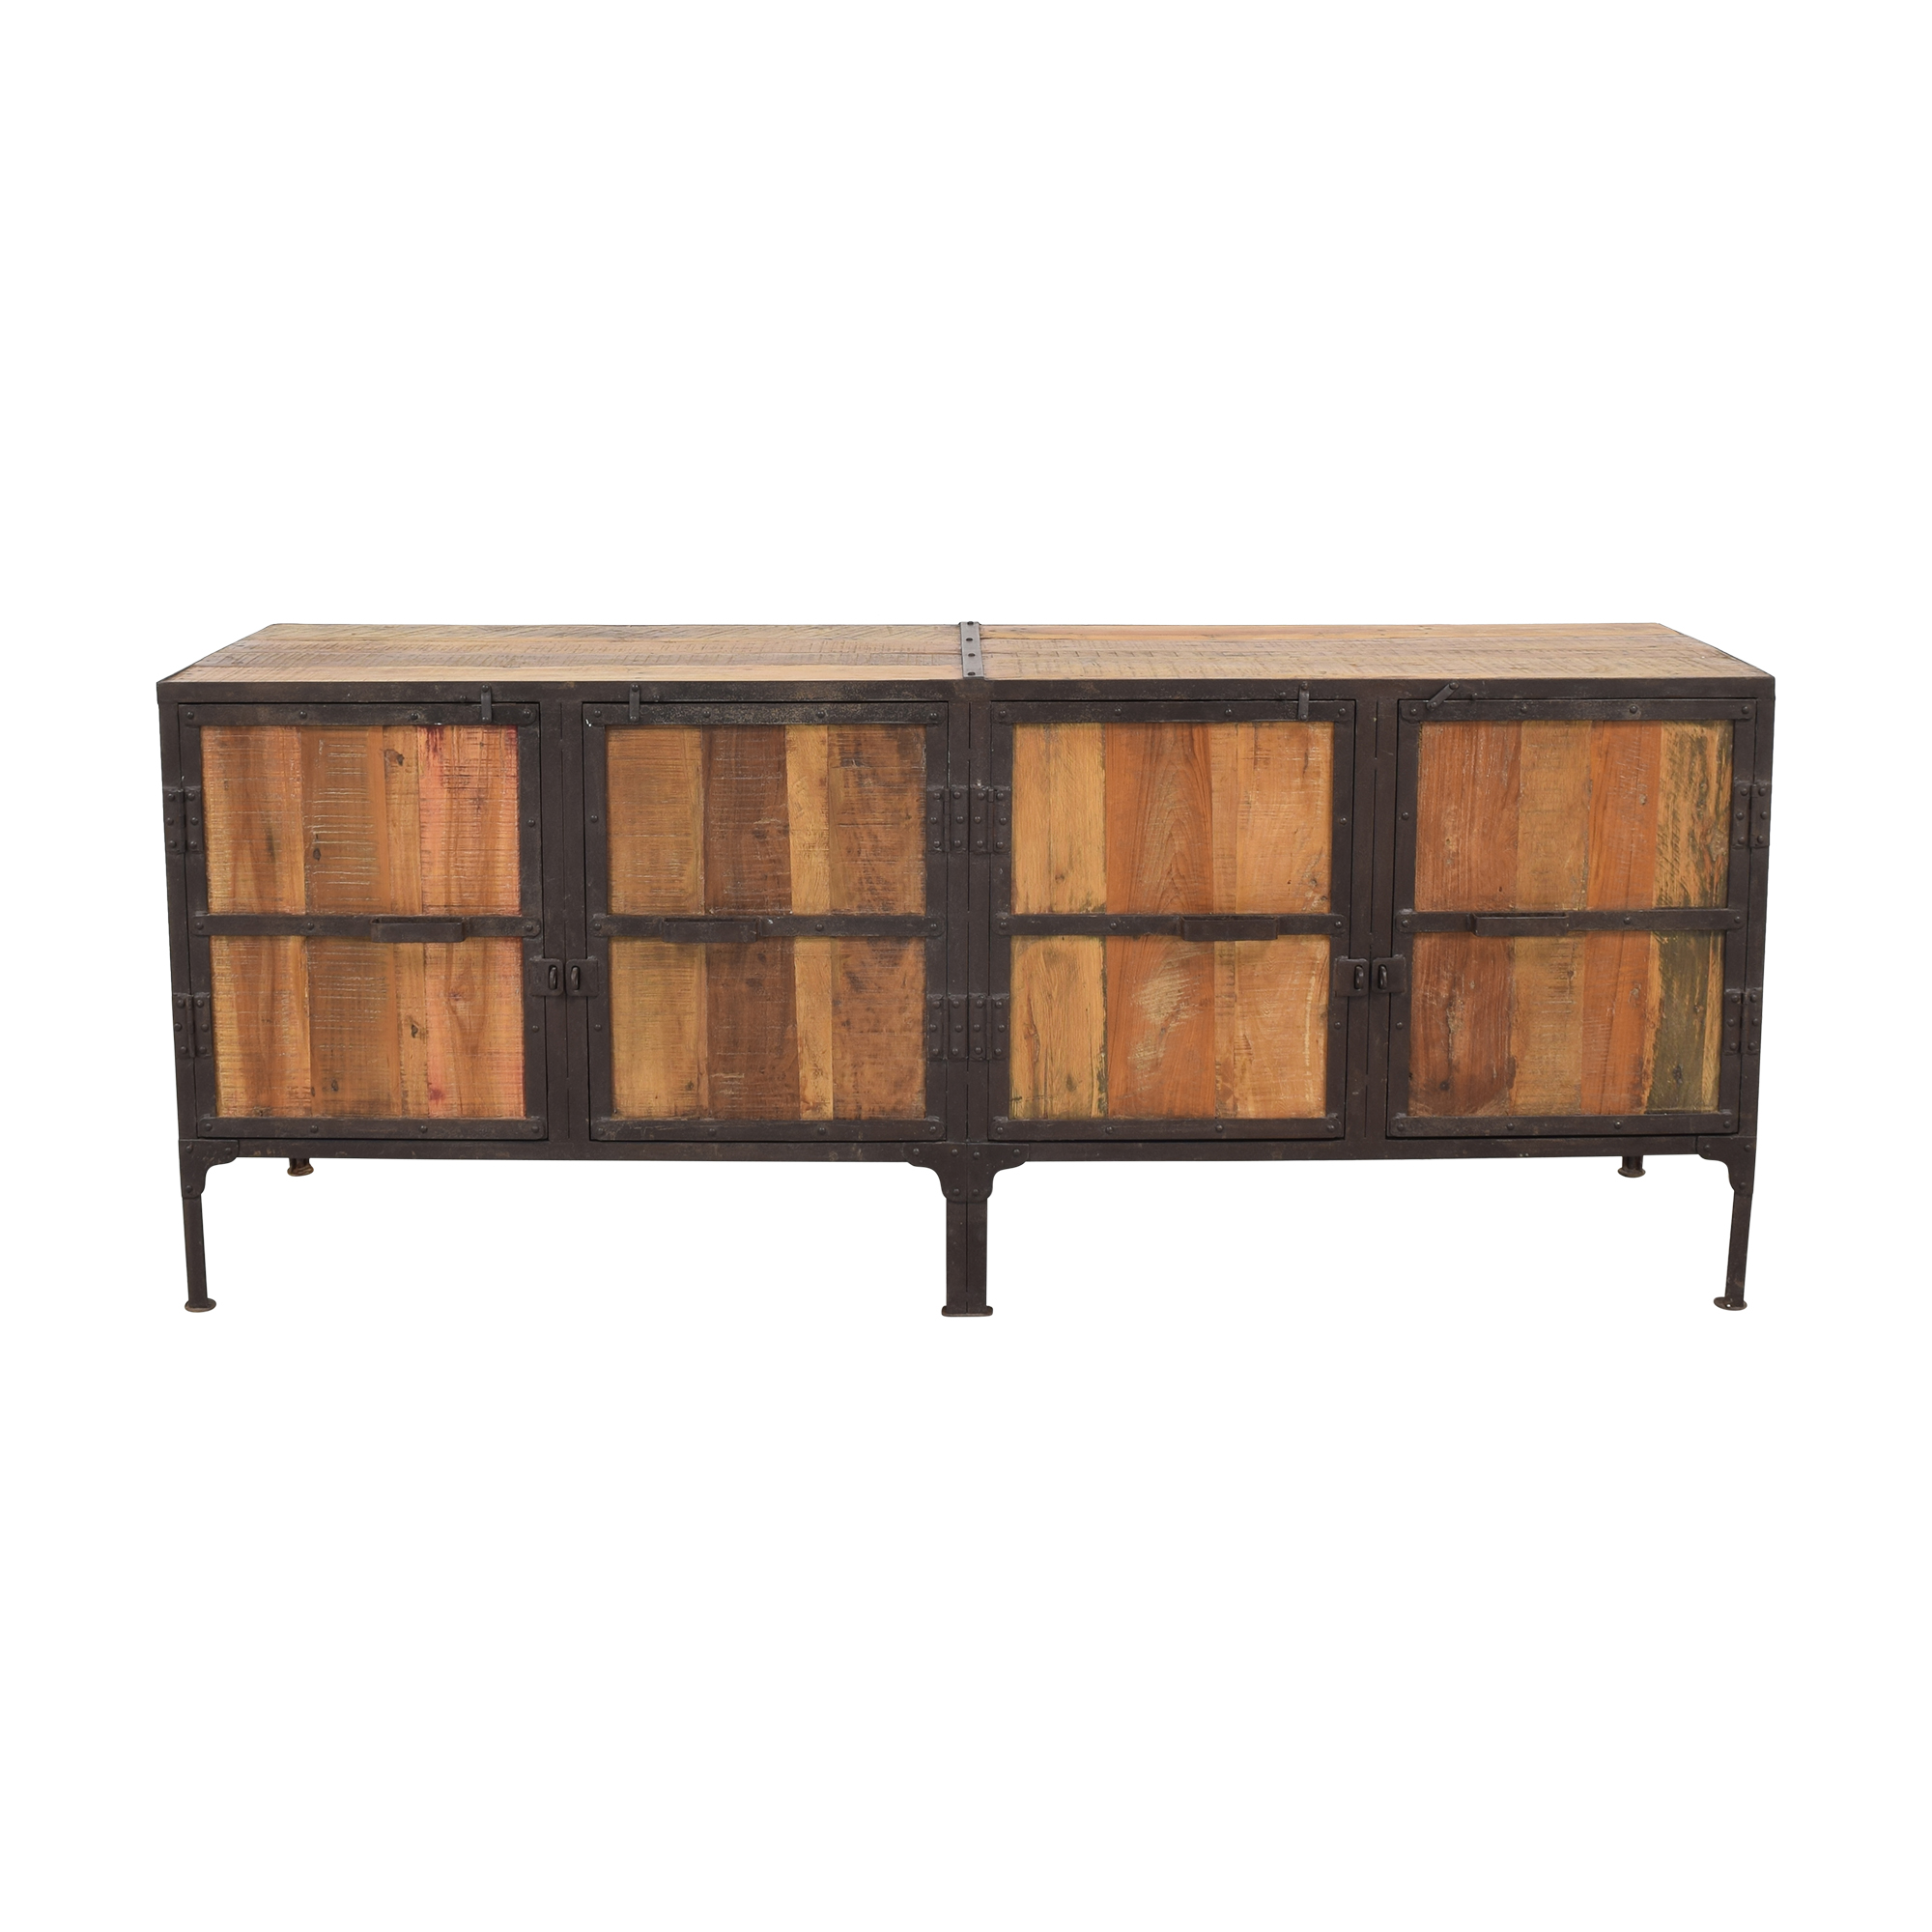 Overstock CG Sparks Handmade Hyderabad Buffet for sale